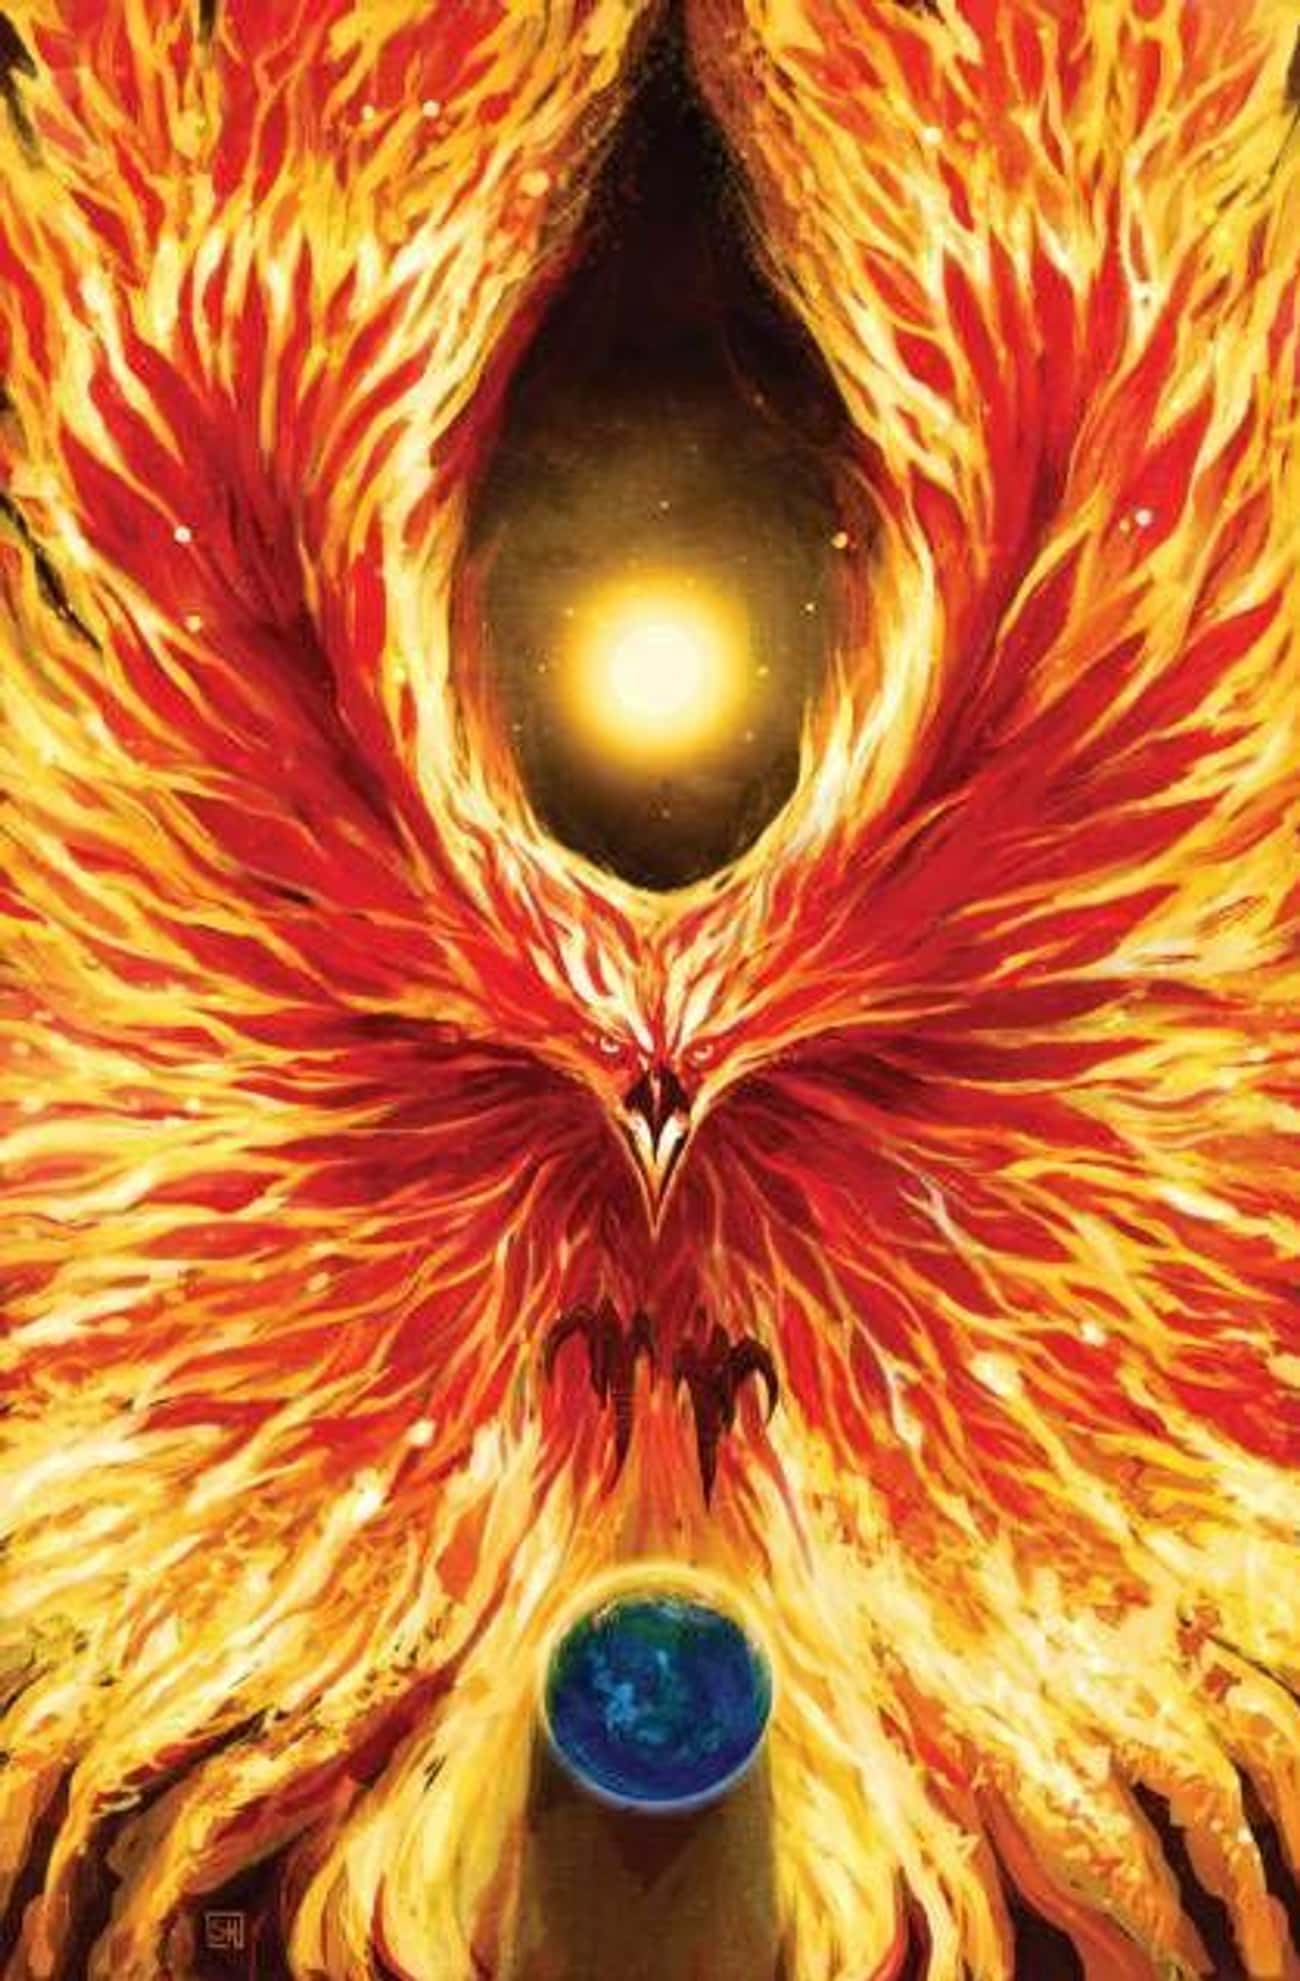 It Kills Babies is listed (or ranked) 1 on the list 16 Reasons The Phoenix Force Is The Craziest Thing In The Marvel Universe